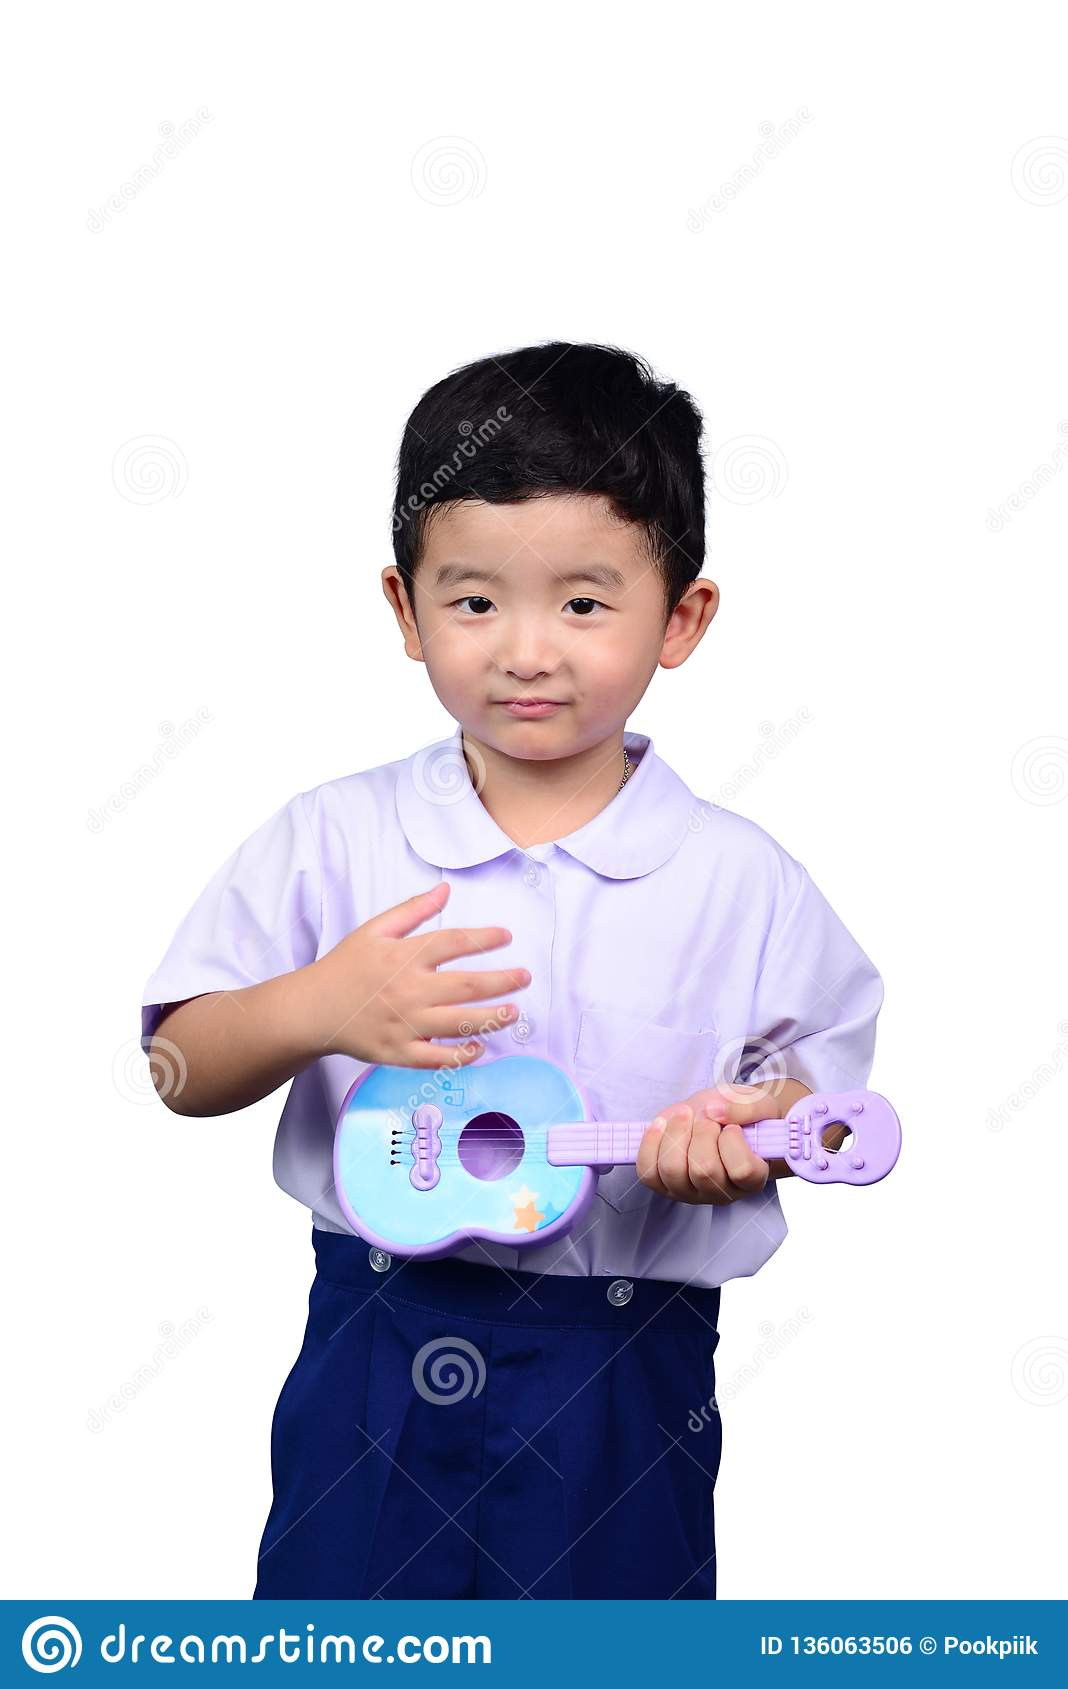 Asian Thai kindergarten student kid in school uniform playing toy guitar isolated on white background with clipping path. musical